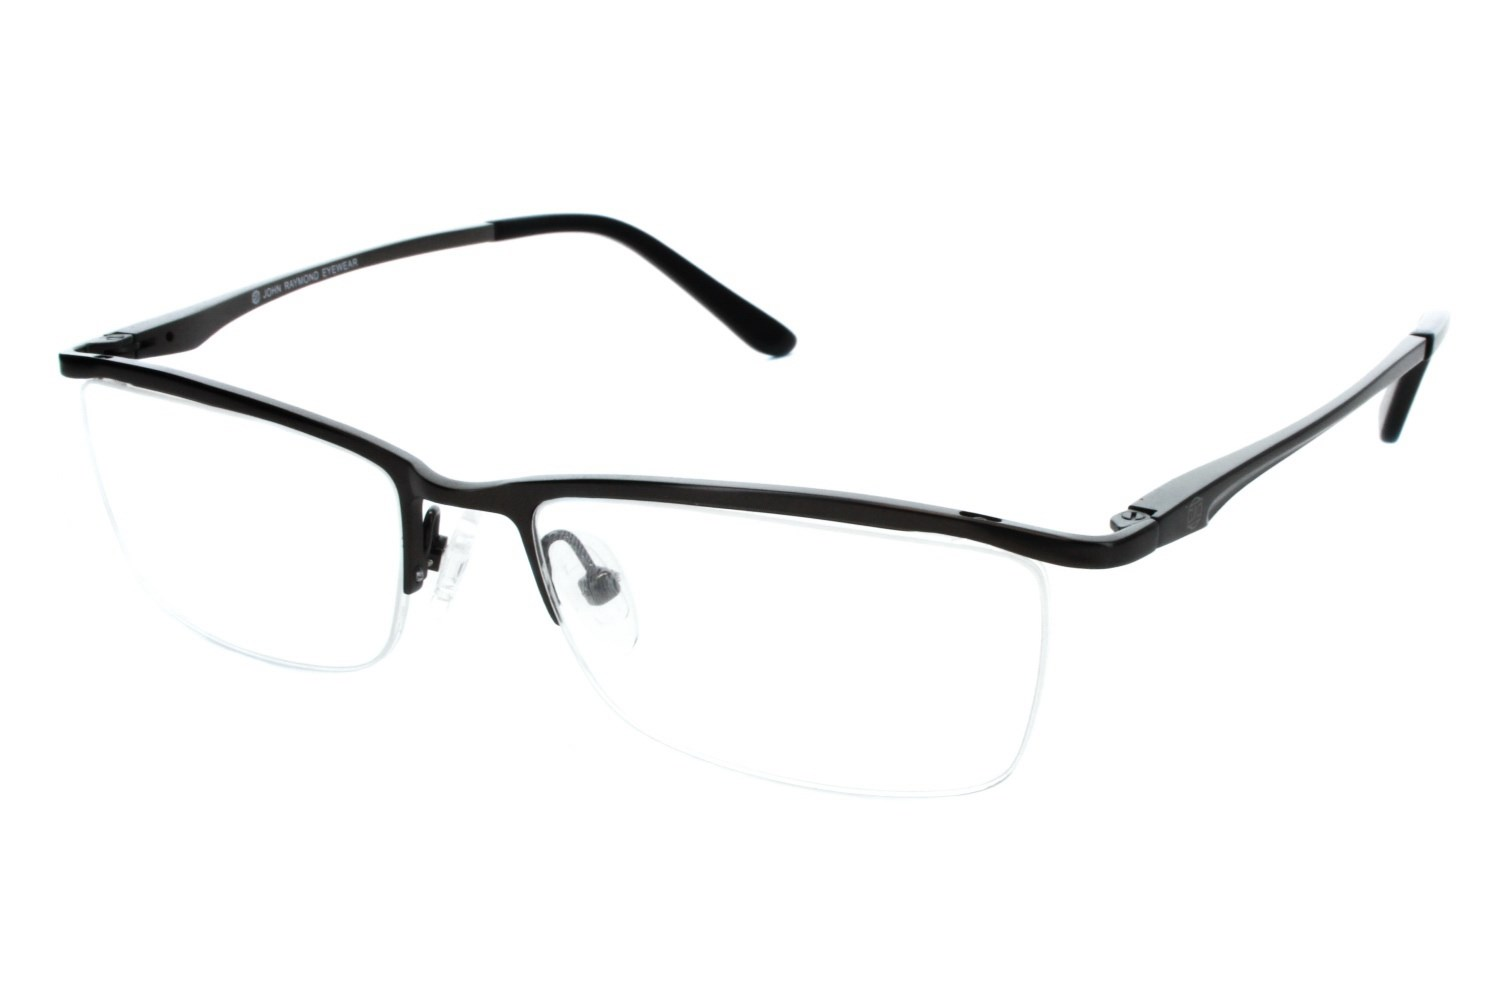 John Raymond Ace Prescription Eyeglasses Frames